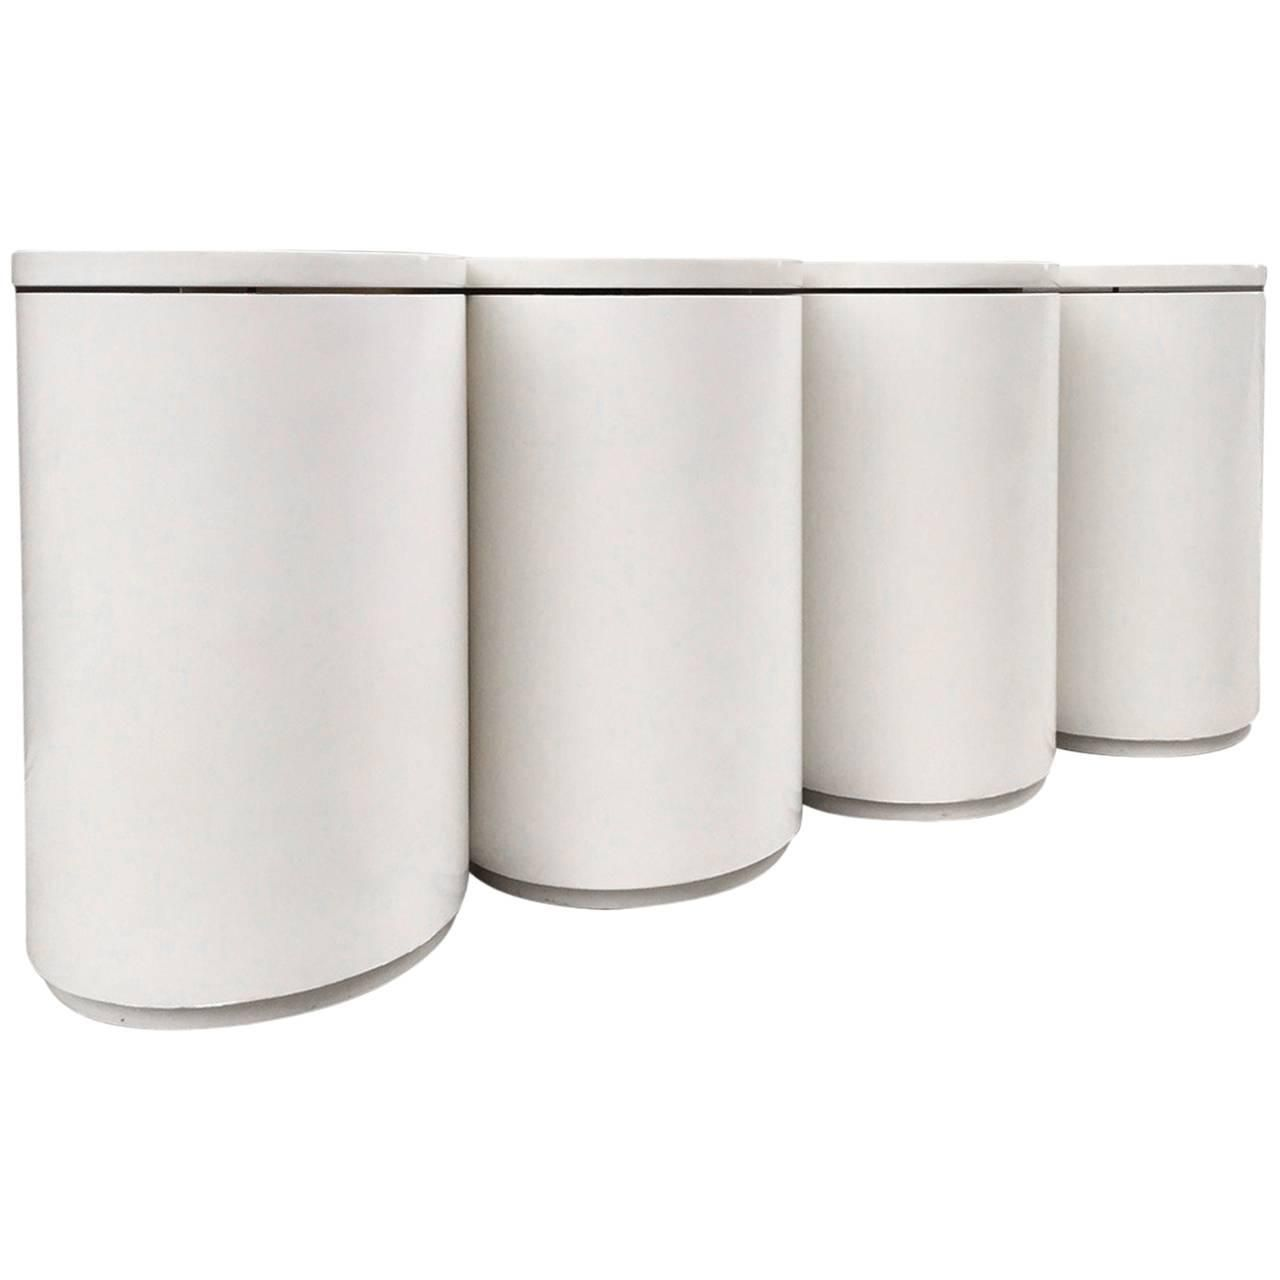 Lacquered Cylindrical Console style of Paul Evans 1